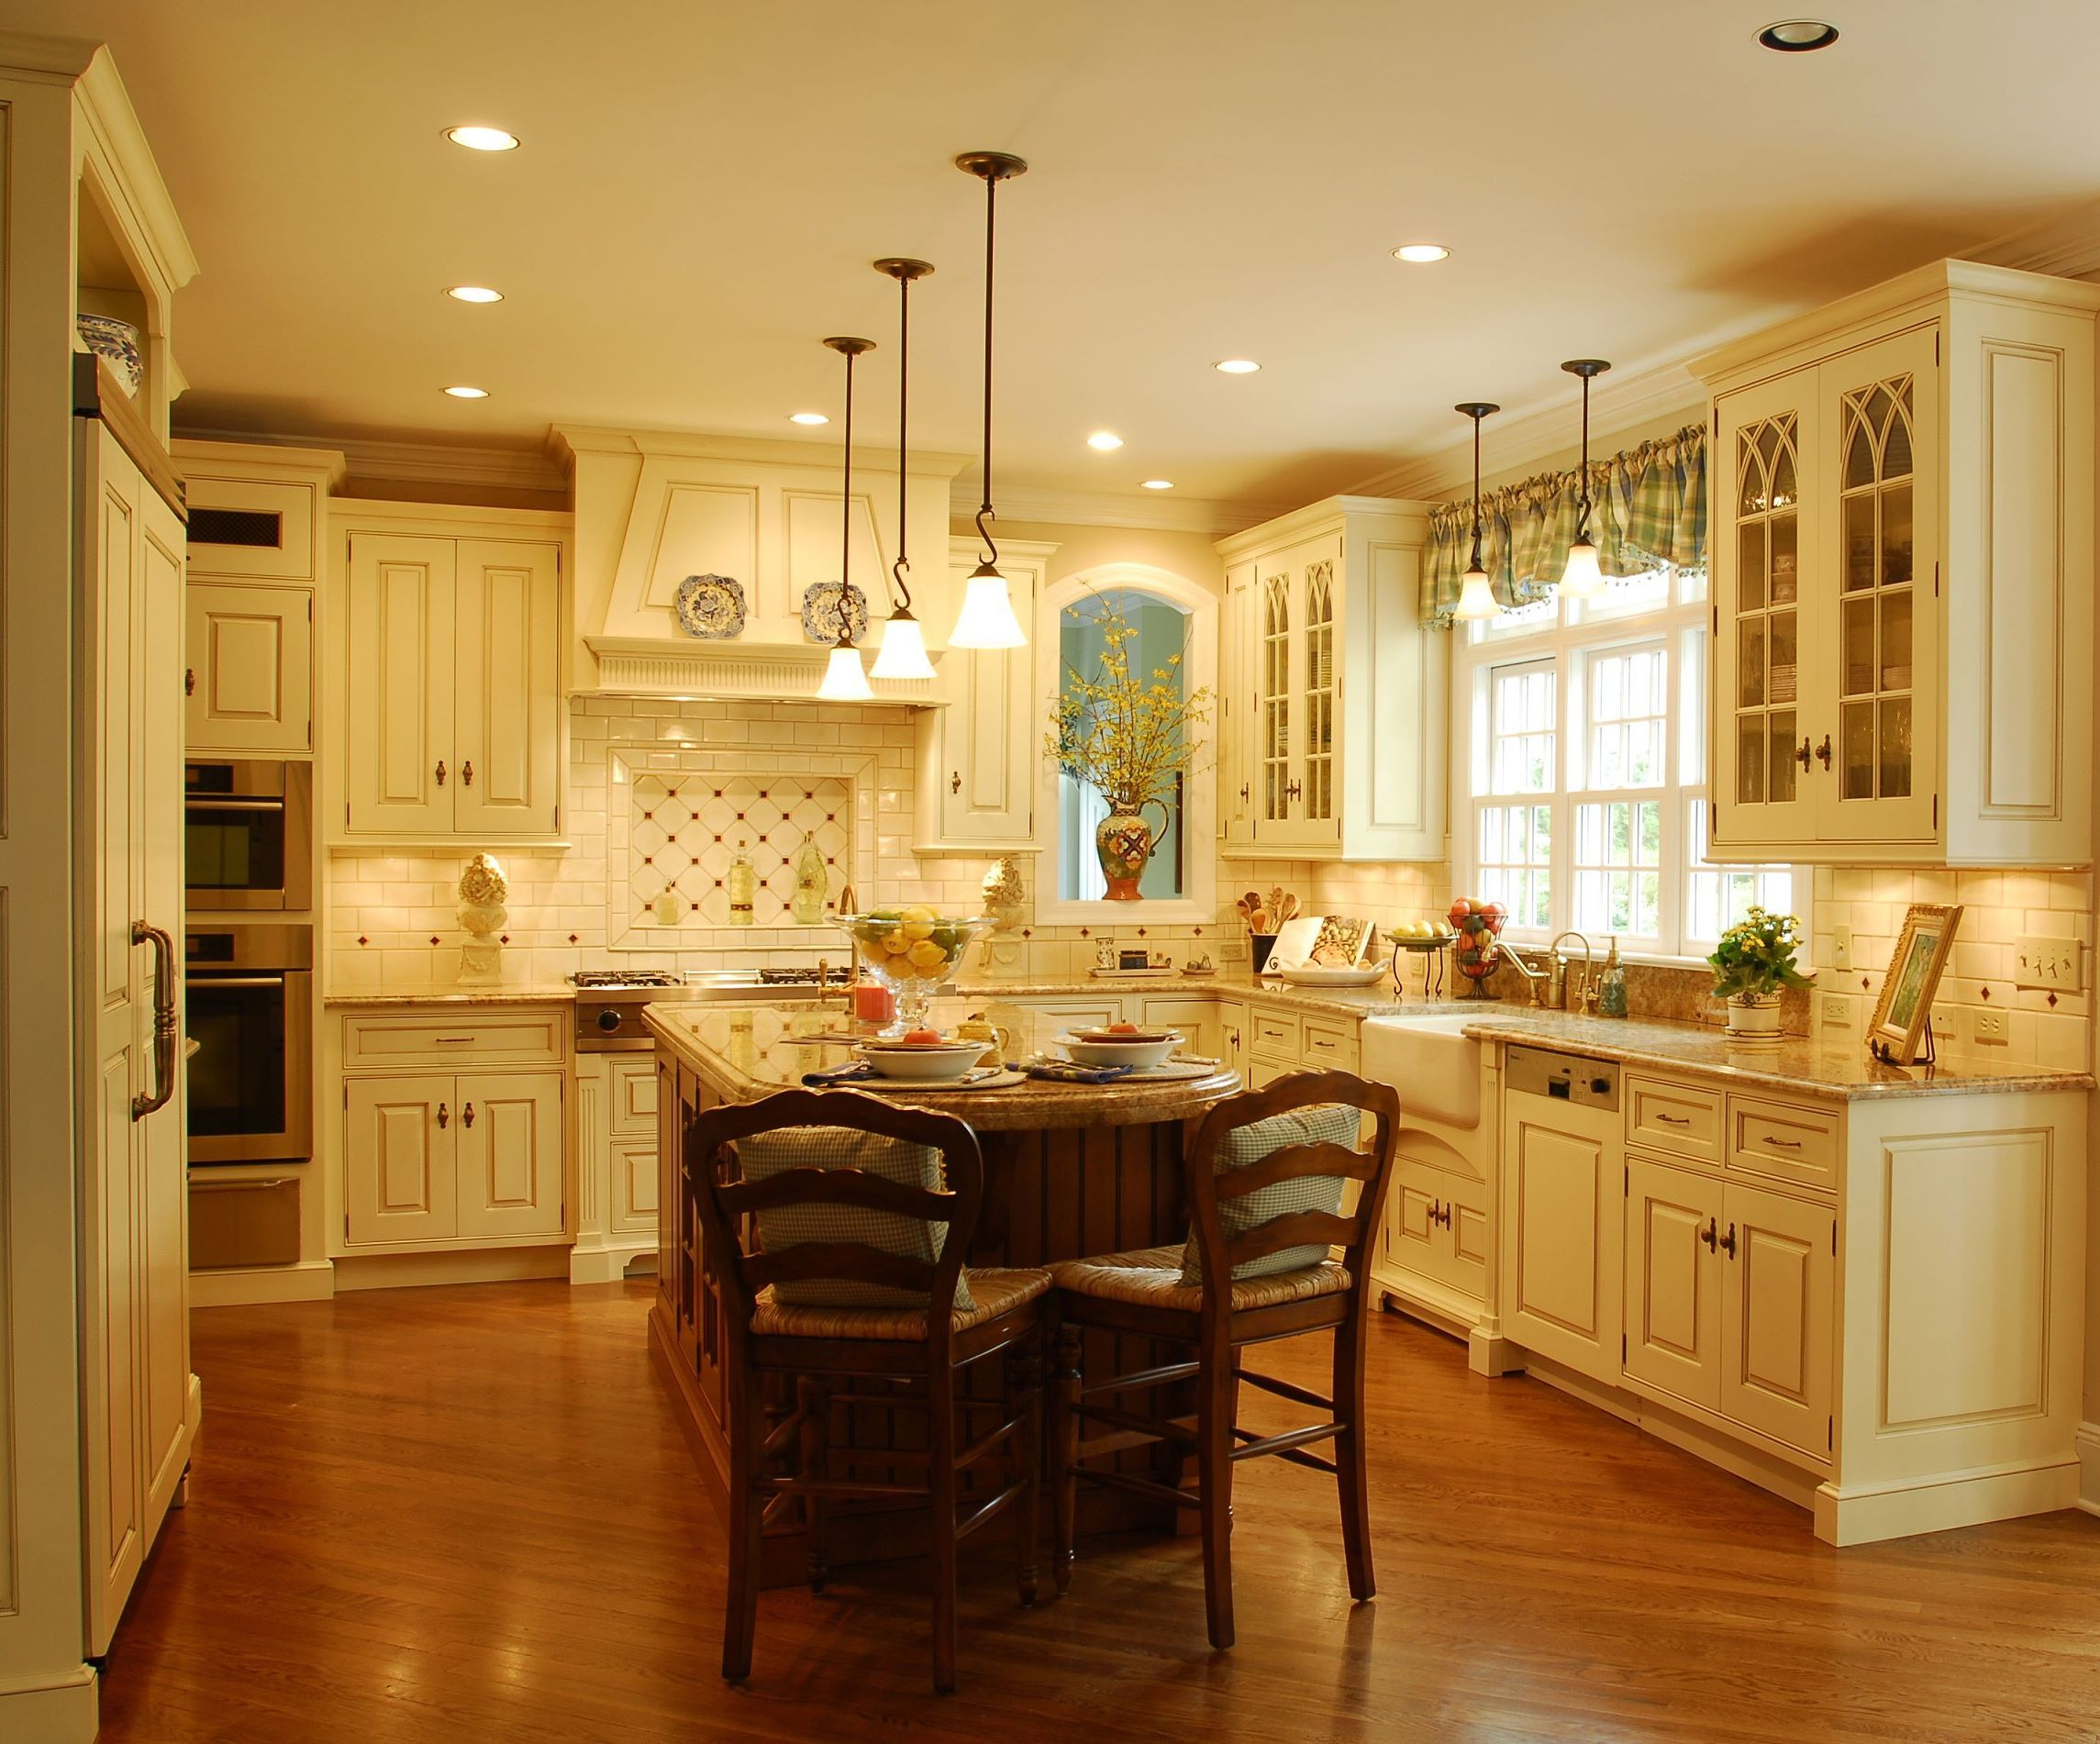 traditional kitchen design. 25 Awesome Traditional Kitchen Design  Custom kitchens